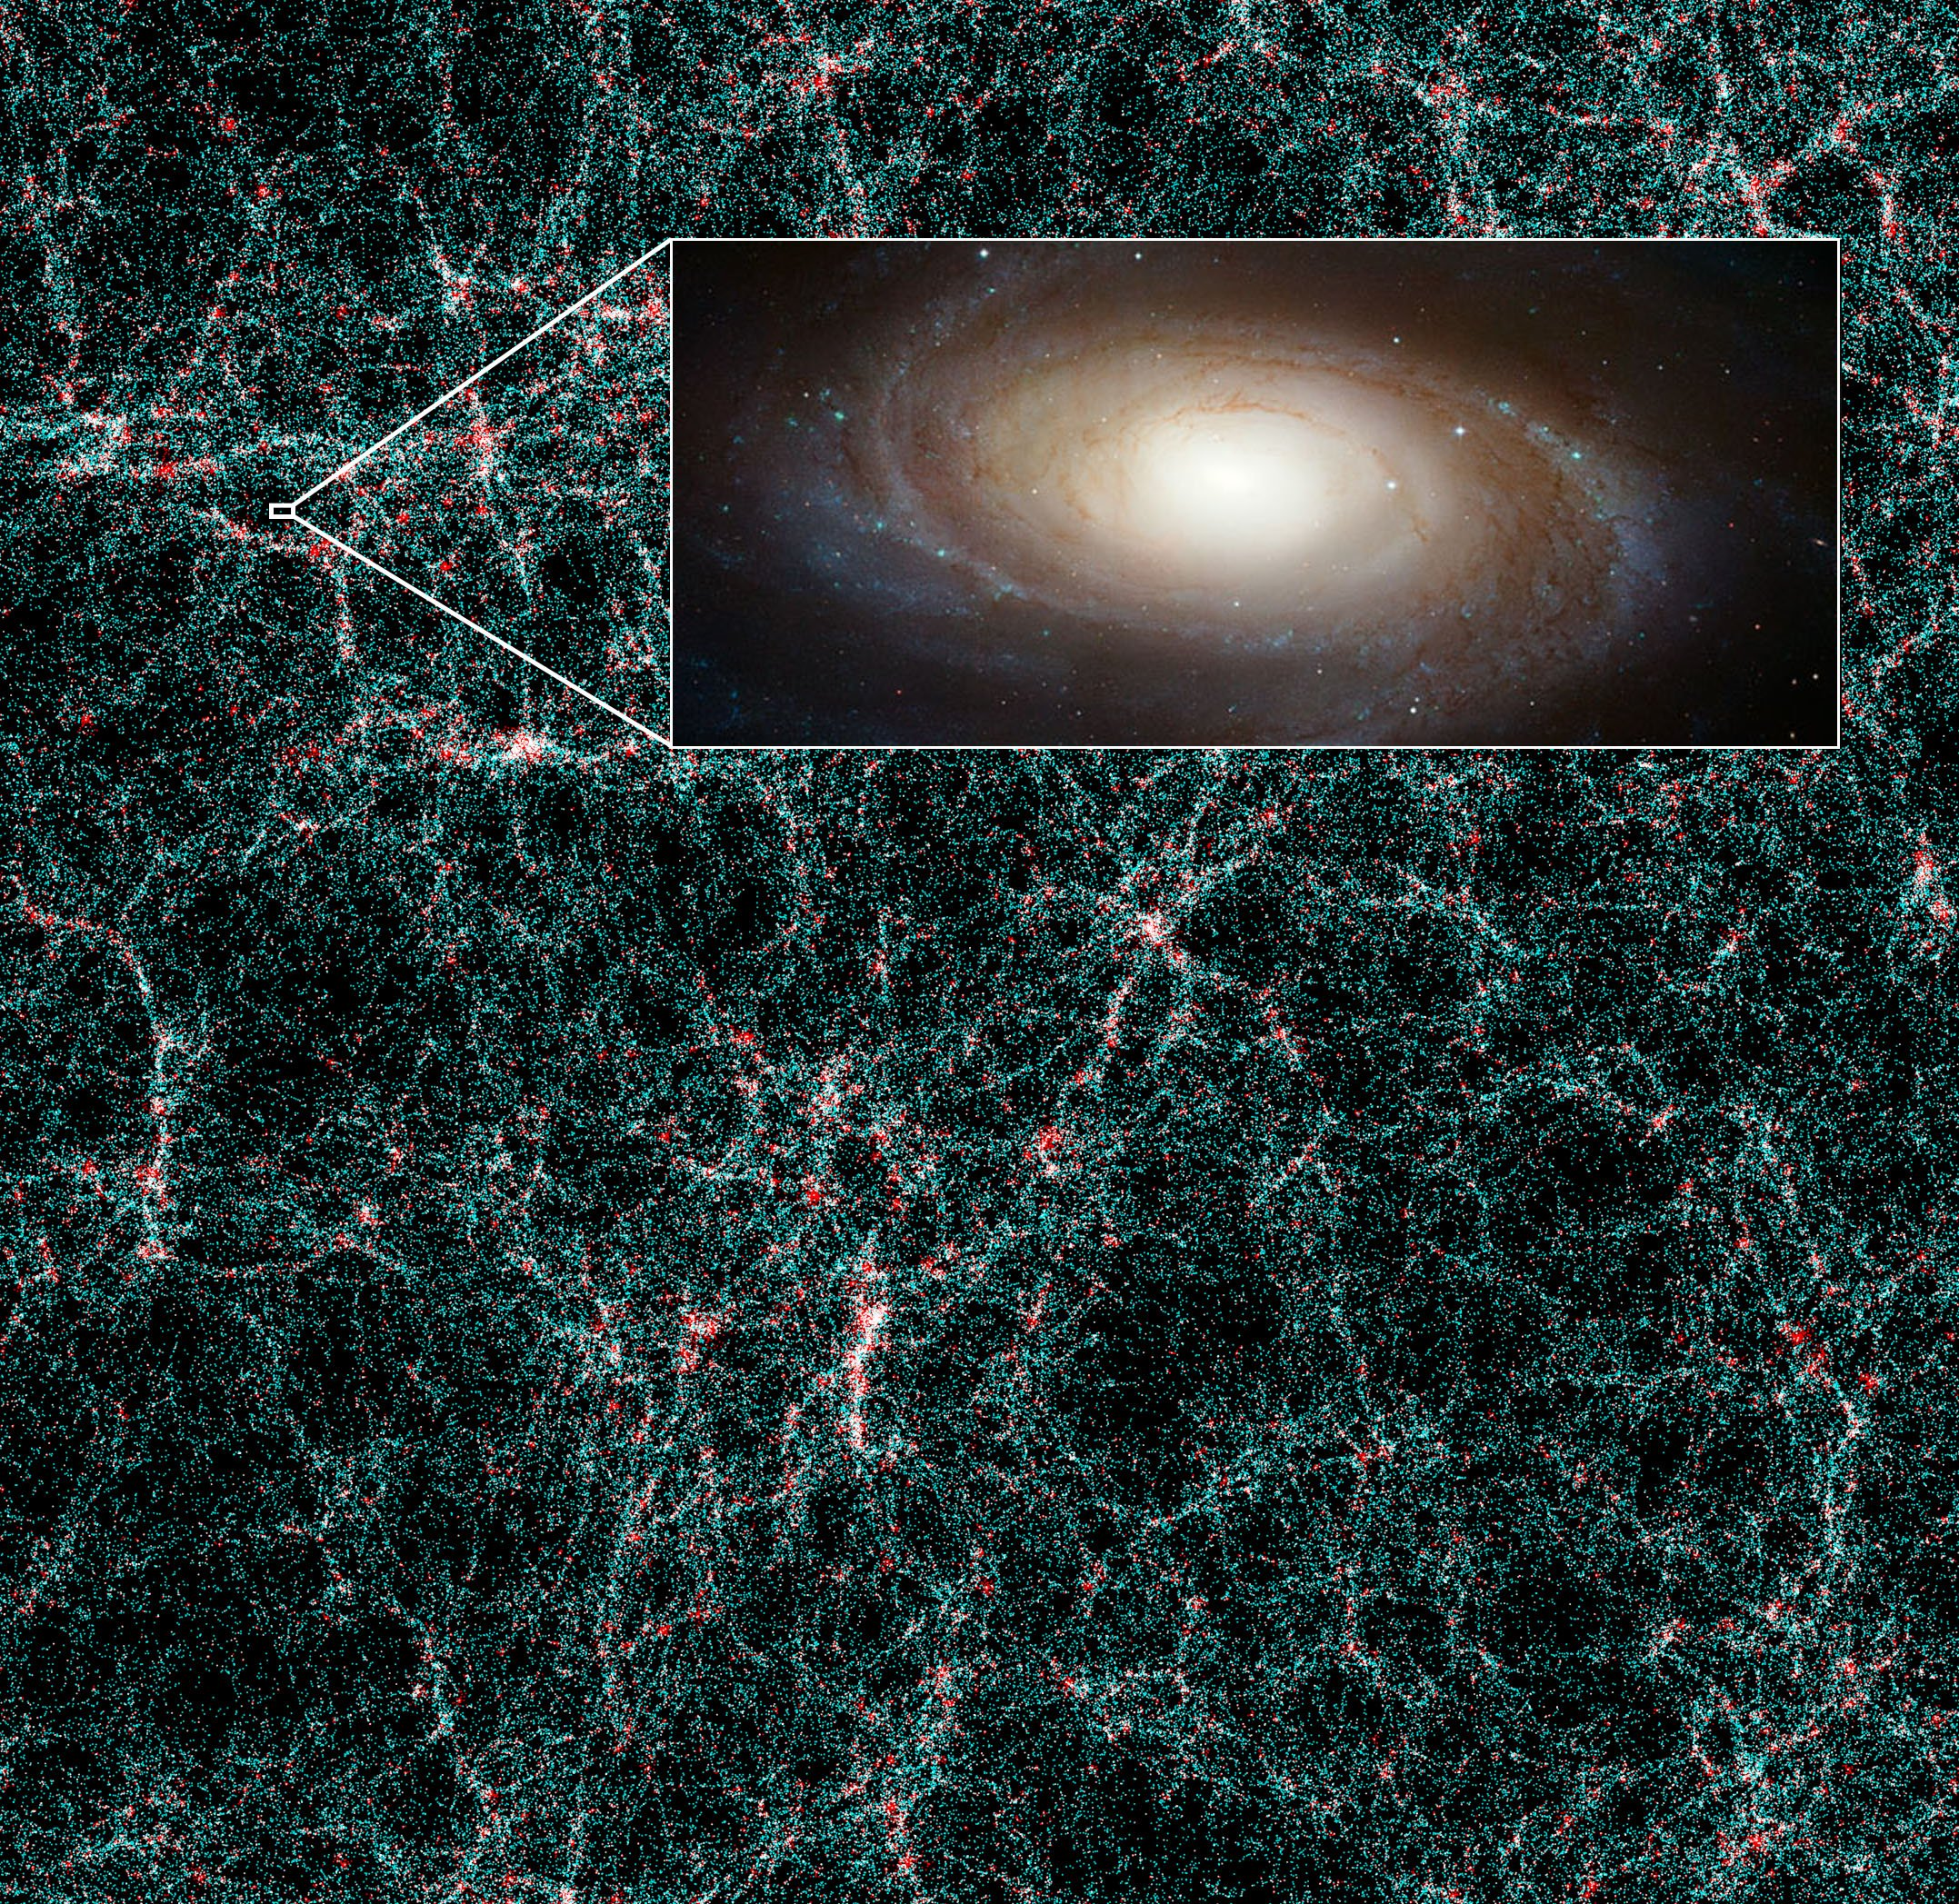 "A picture depicting of billions of galaxies, each represented by a single dot in the image, which consists mostly of a green background that has a web-like structure, full of these dots. On the top-right corner of the image there's a rectangle ""zooming in"" on one of the dots, where a galaxy can be seen in more detail."